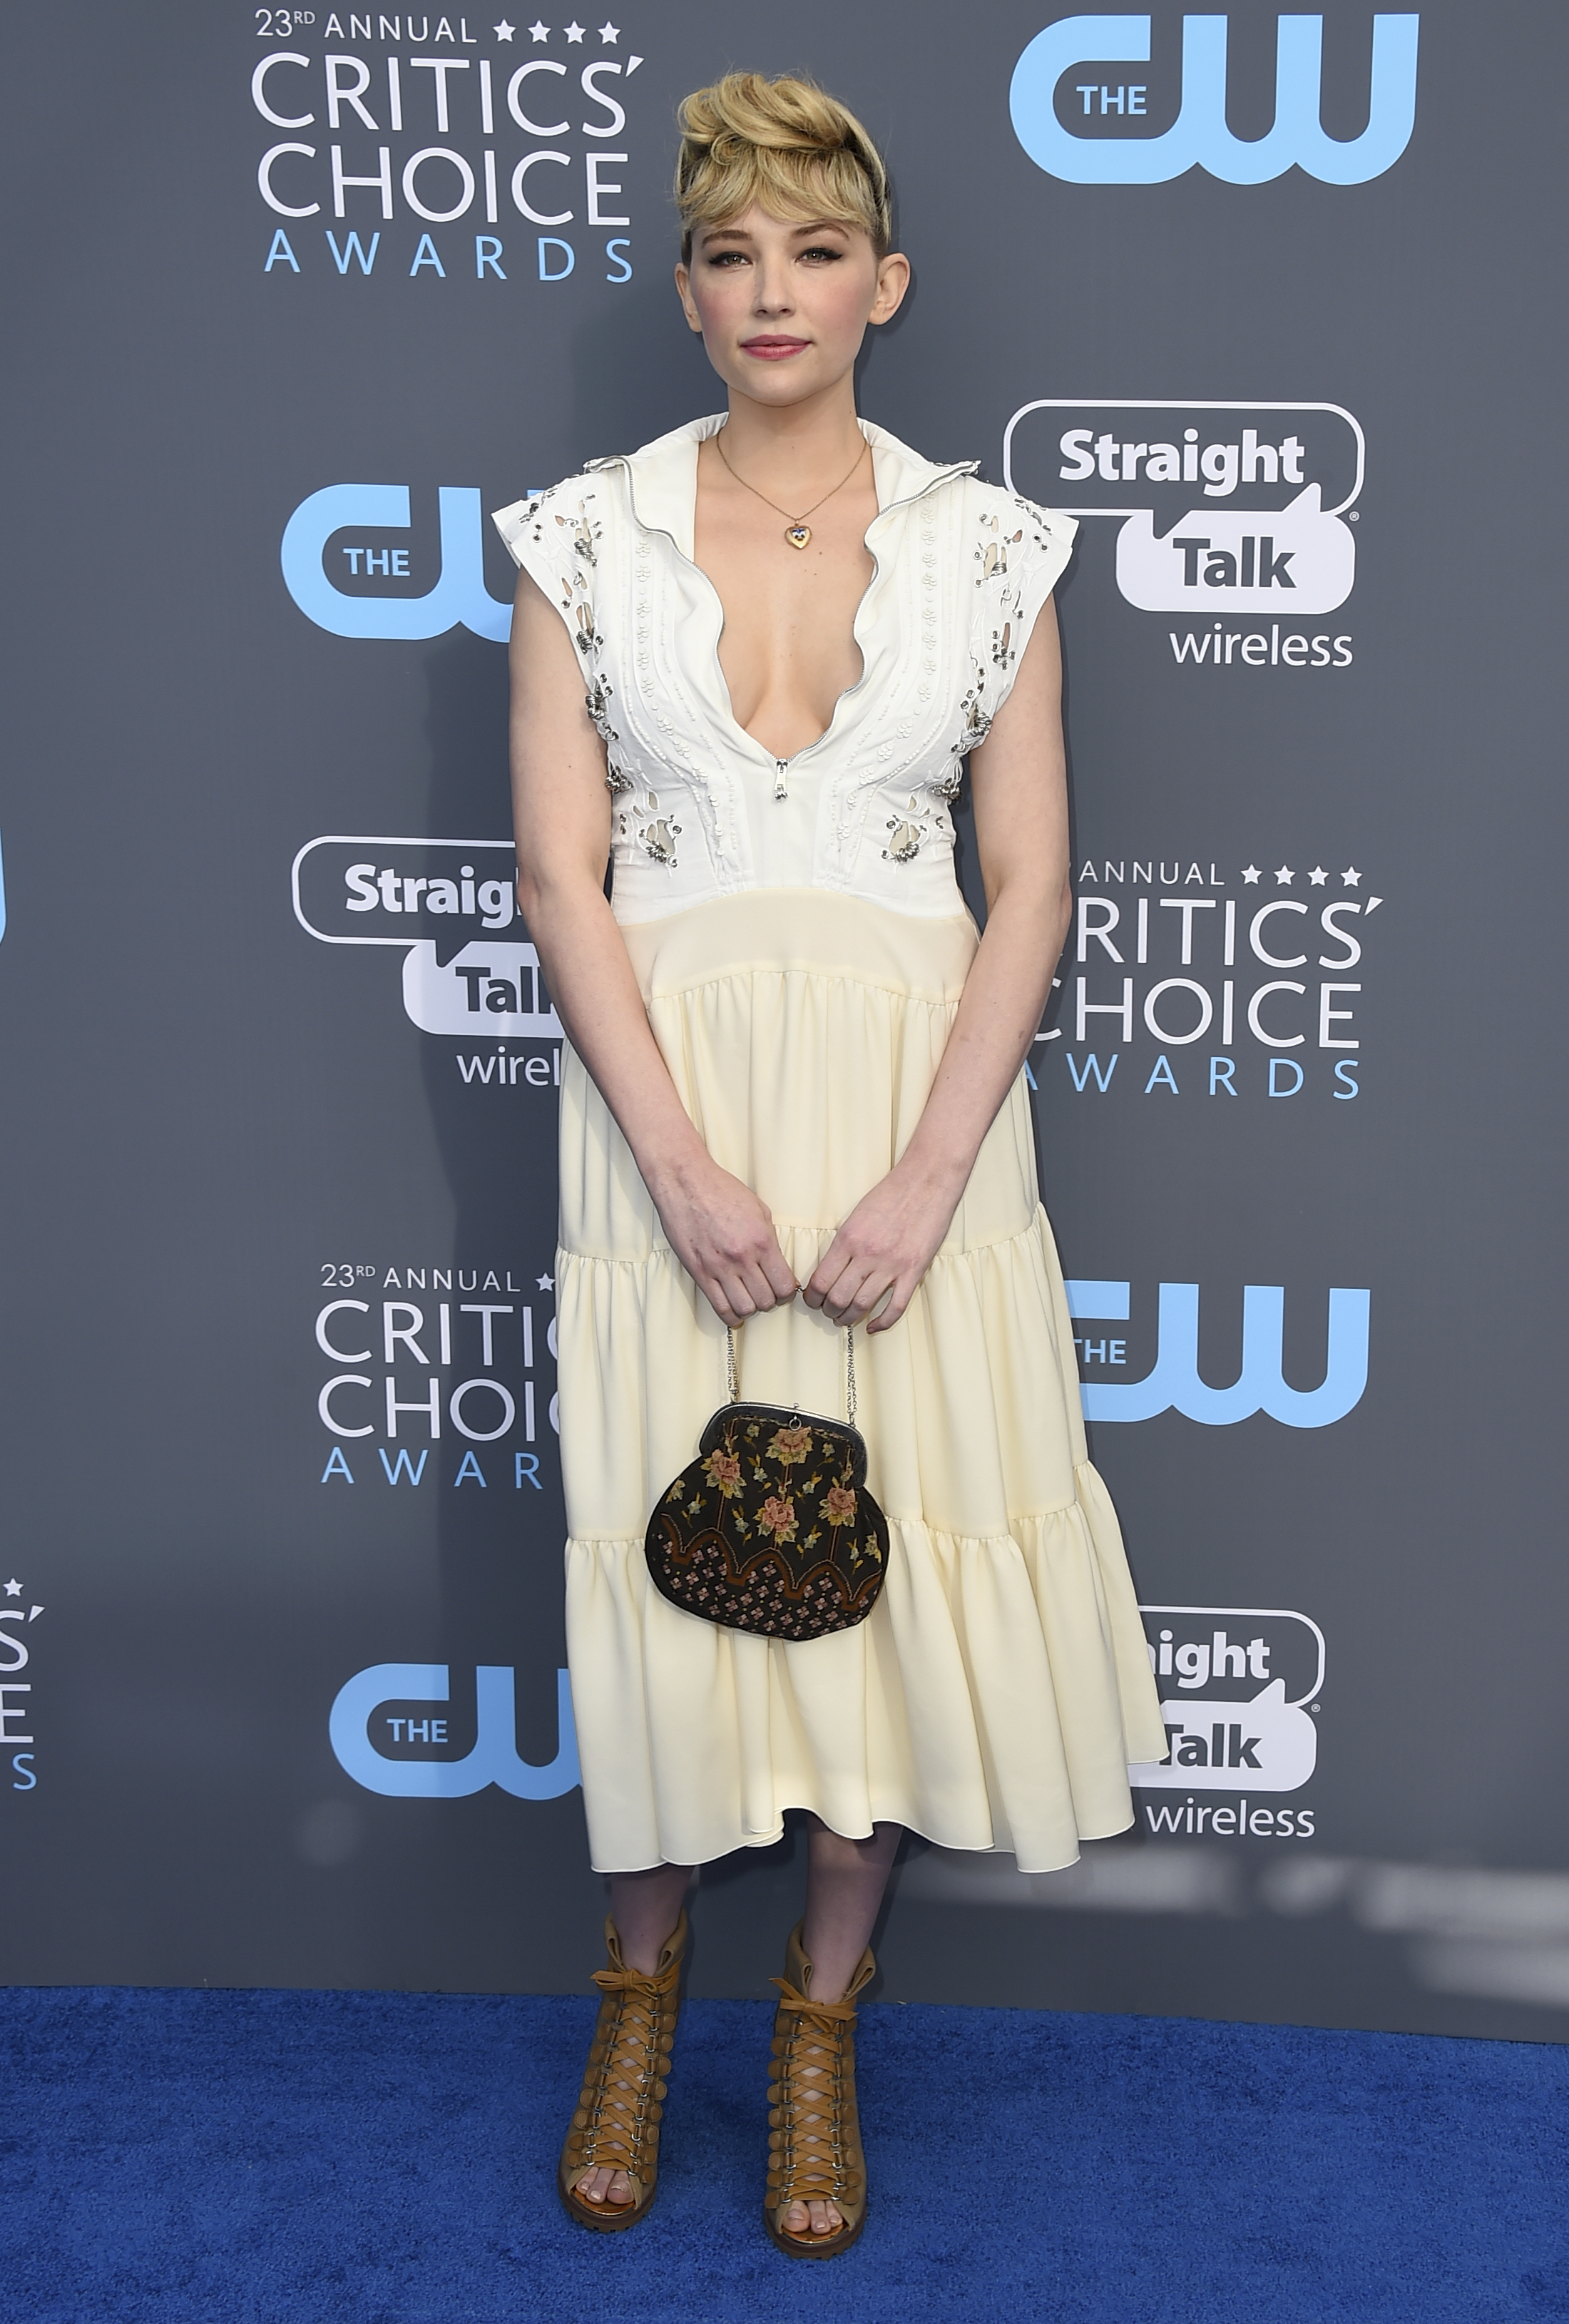 <div class='meta'><div class='origin-logo' data-origin='AP'></div><span class='caption-text' data-credit='Jordan Strauss/Invision/AP'>Haley Bennett arrives at the 23rd annual Critics' Choice Awards at the Barker Hangar on Thursday, Jan. 11, 2018, in Santa Monica, Calif.</span></div>